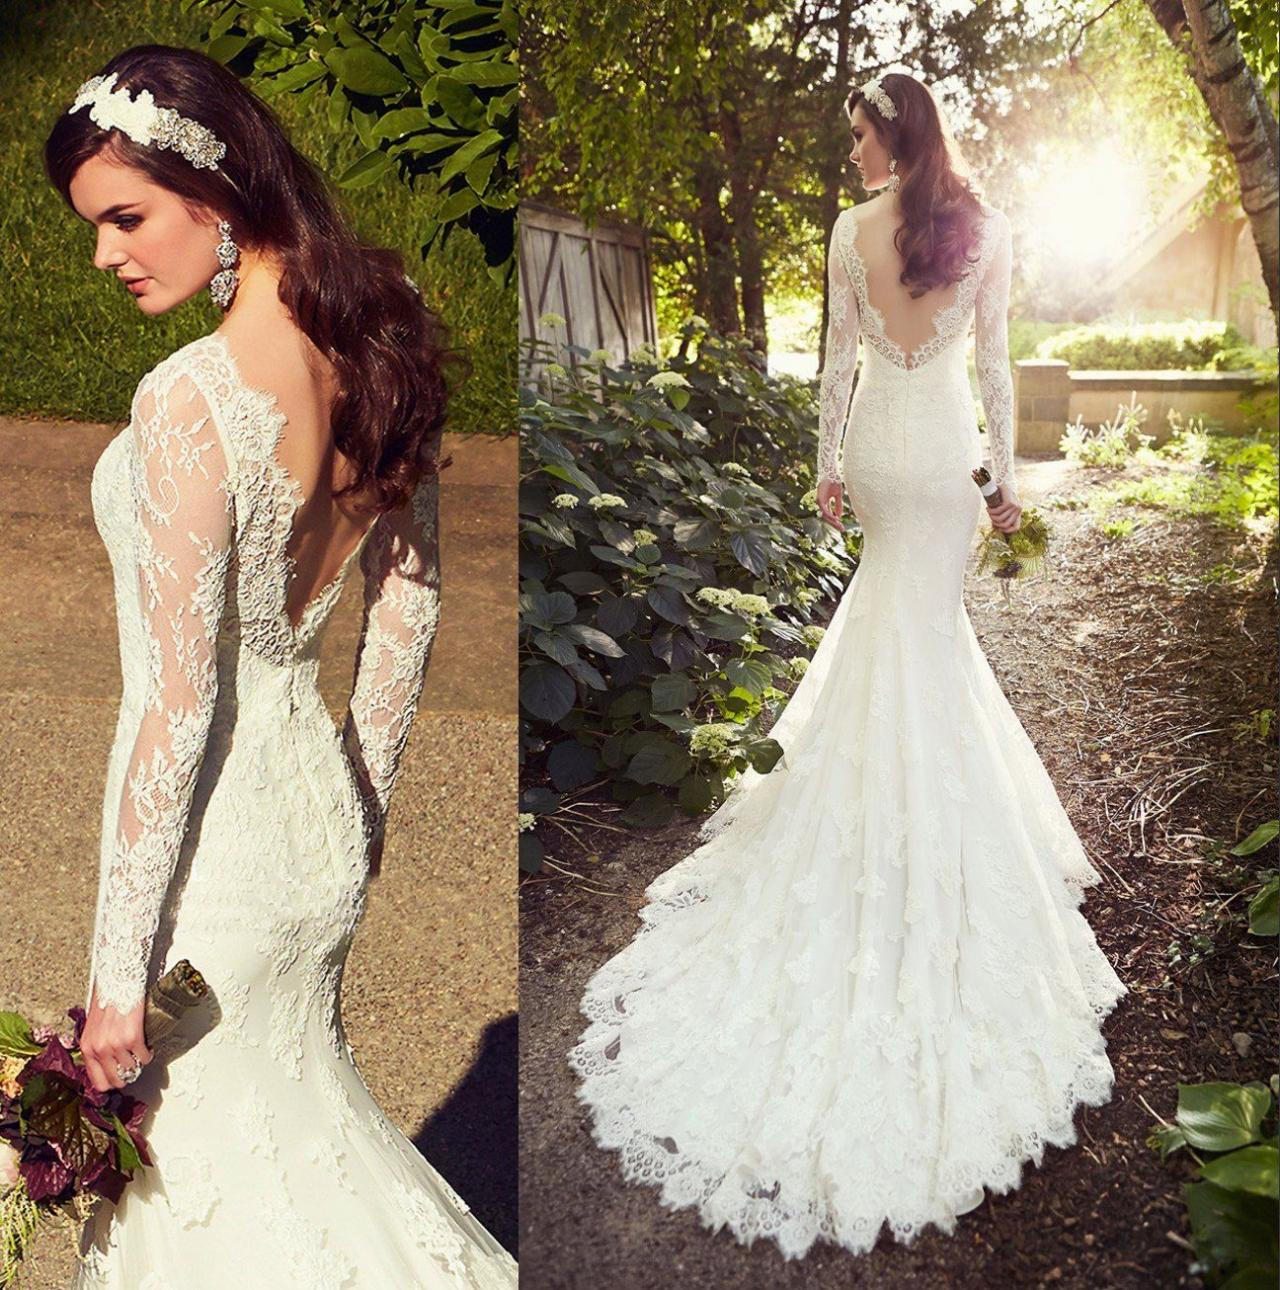 white wedding dresses long sleeves wedding gown lace wedding gowns ball gown bridal dress princess w lace sleeves wedding dress White Wedding Dresses Long Sleeves Wedding Gown Lace Wedding Gowns Ball Gown Bridal Dress Princess Wedding Dress Beautiful Brides Dress With Long Train